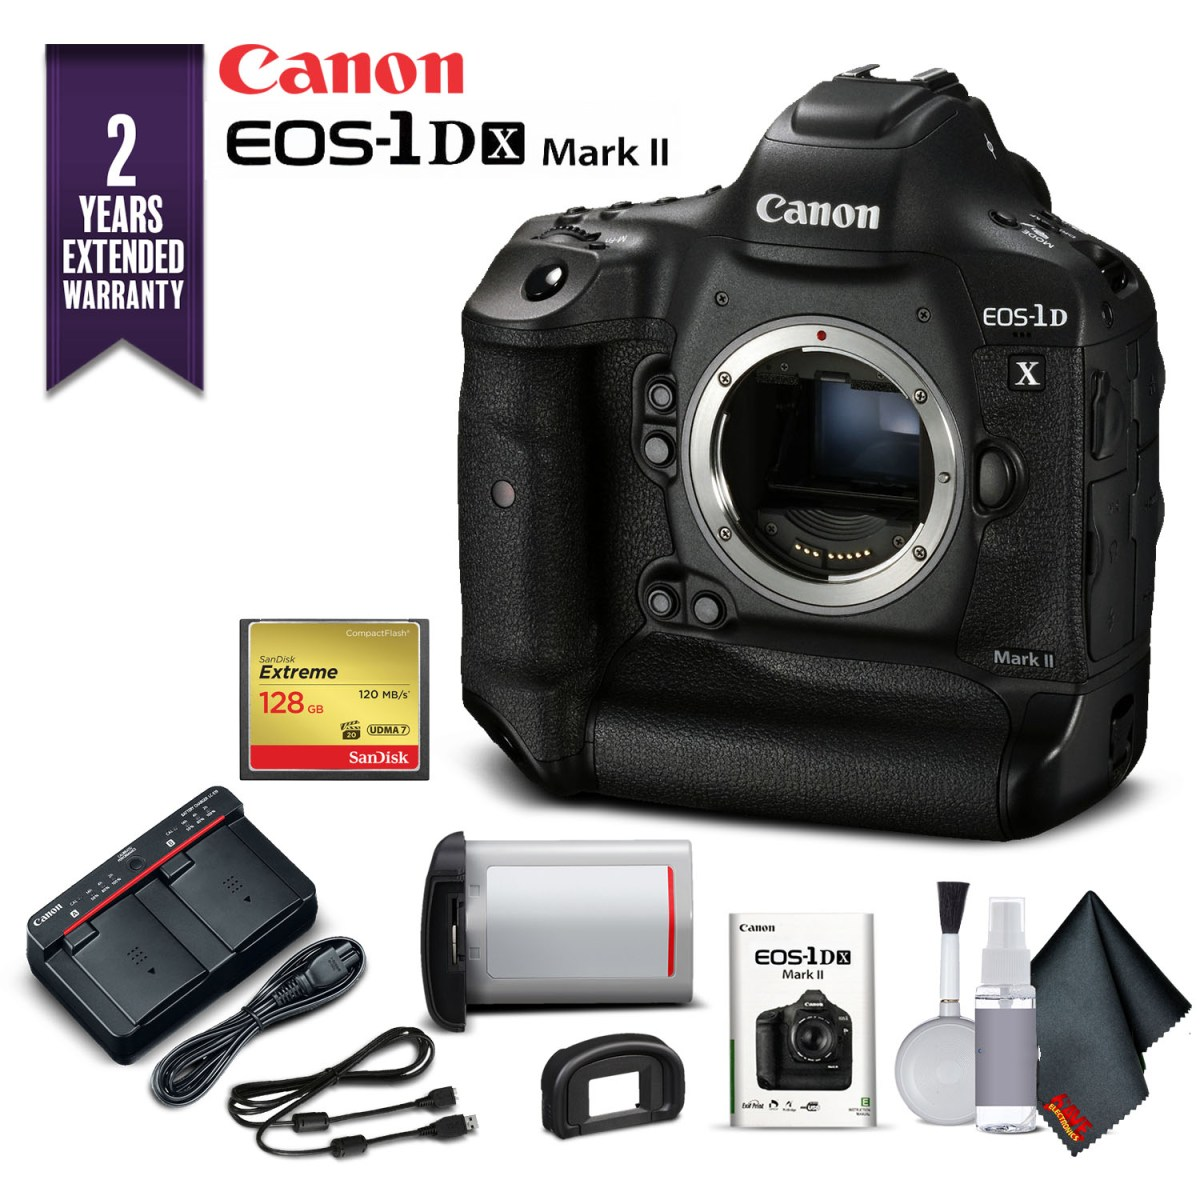 Canon EOS-1DX Mark II DSLR Camera (Body Only) With 2 Year Extended Warranty (Intl Model) - Starter Kit